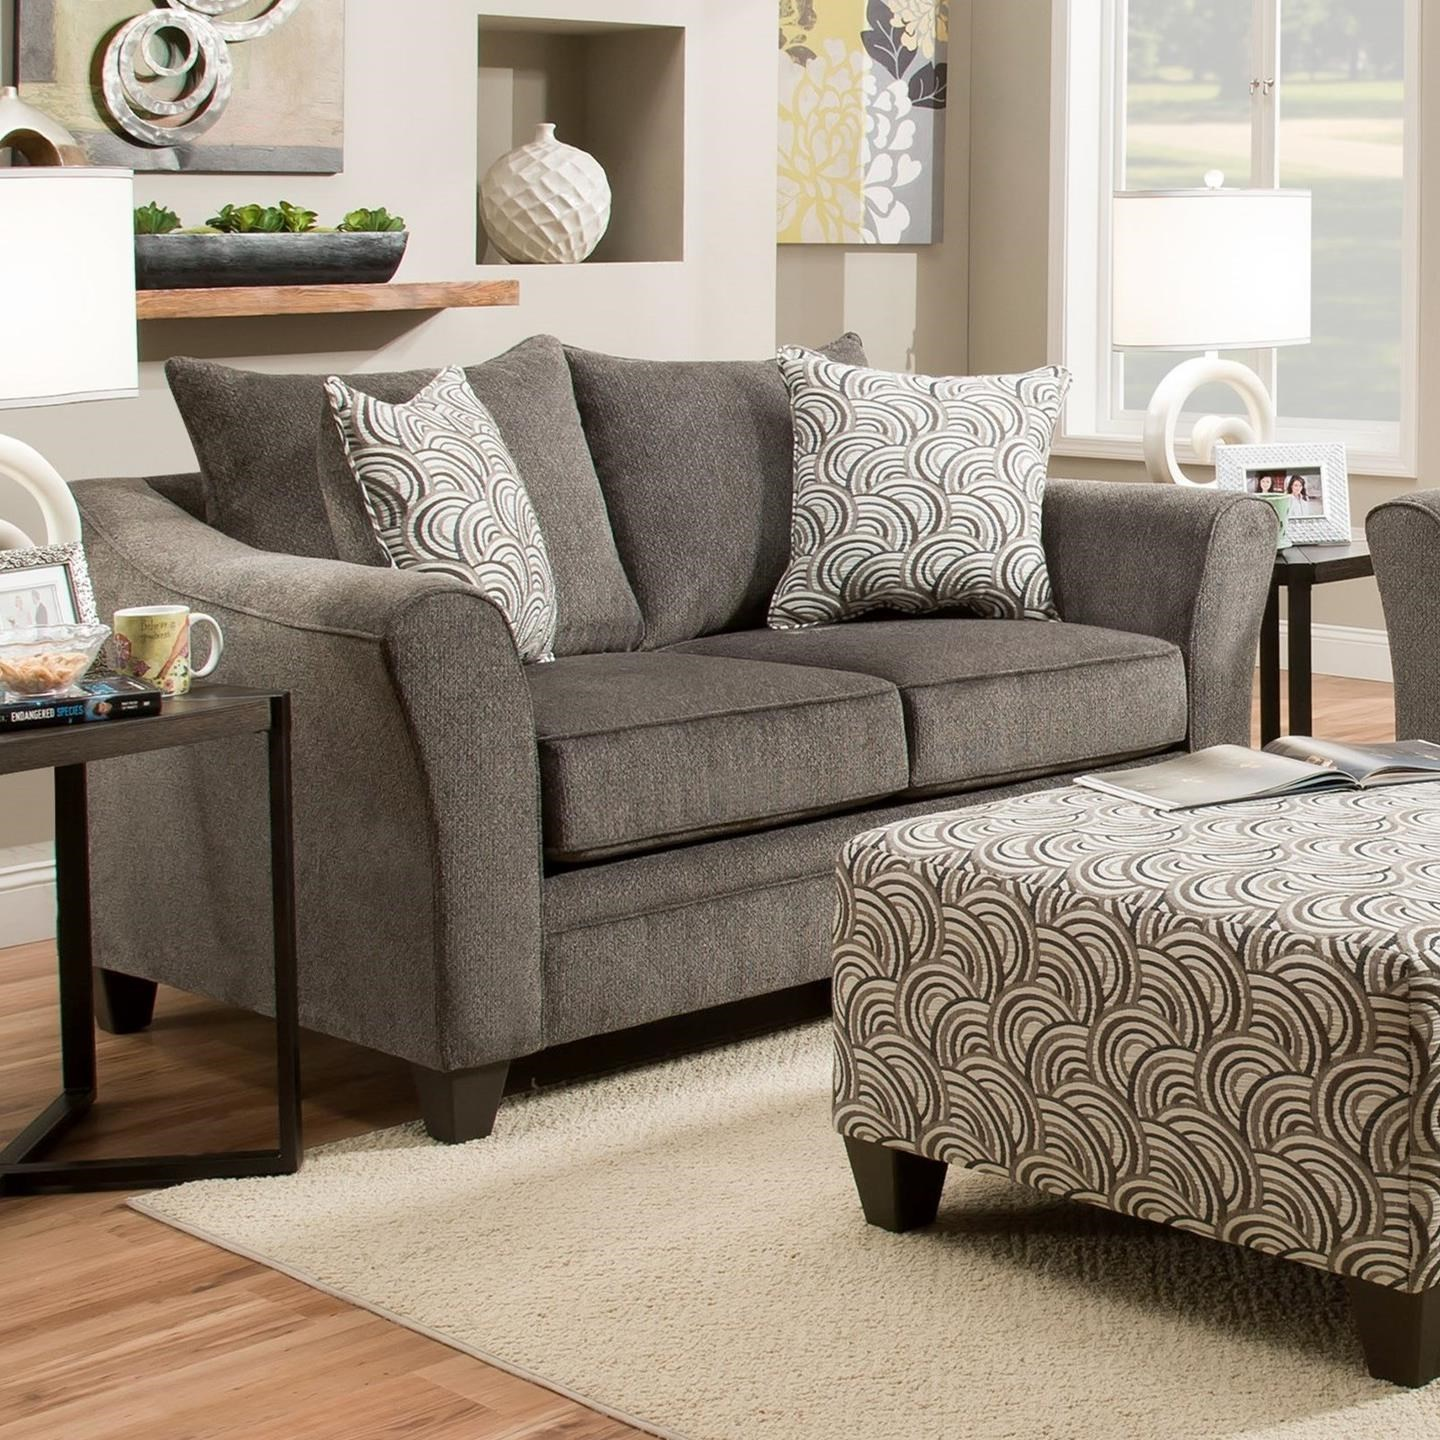 Beau United Furniture Industries 6485Transitional Loveseat